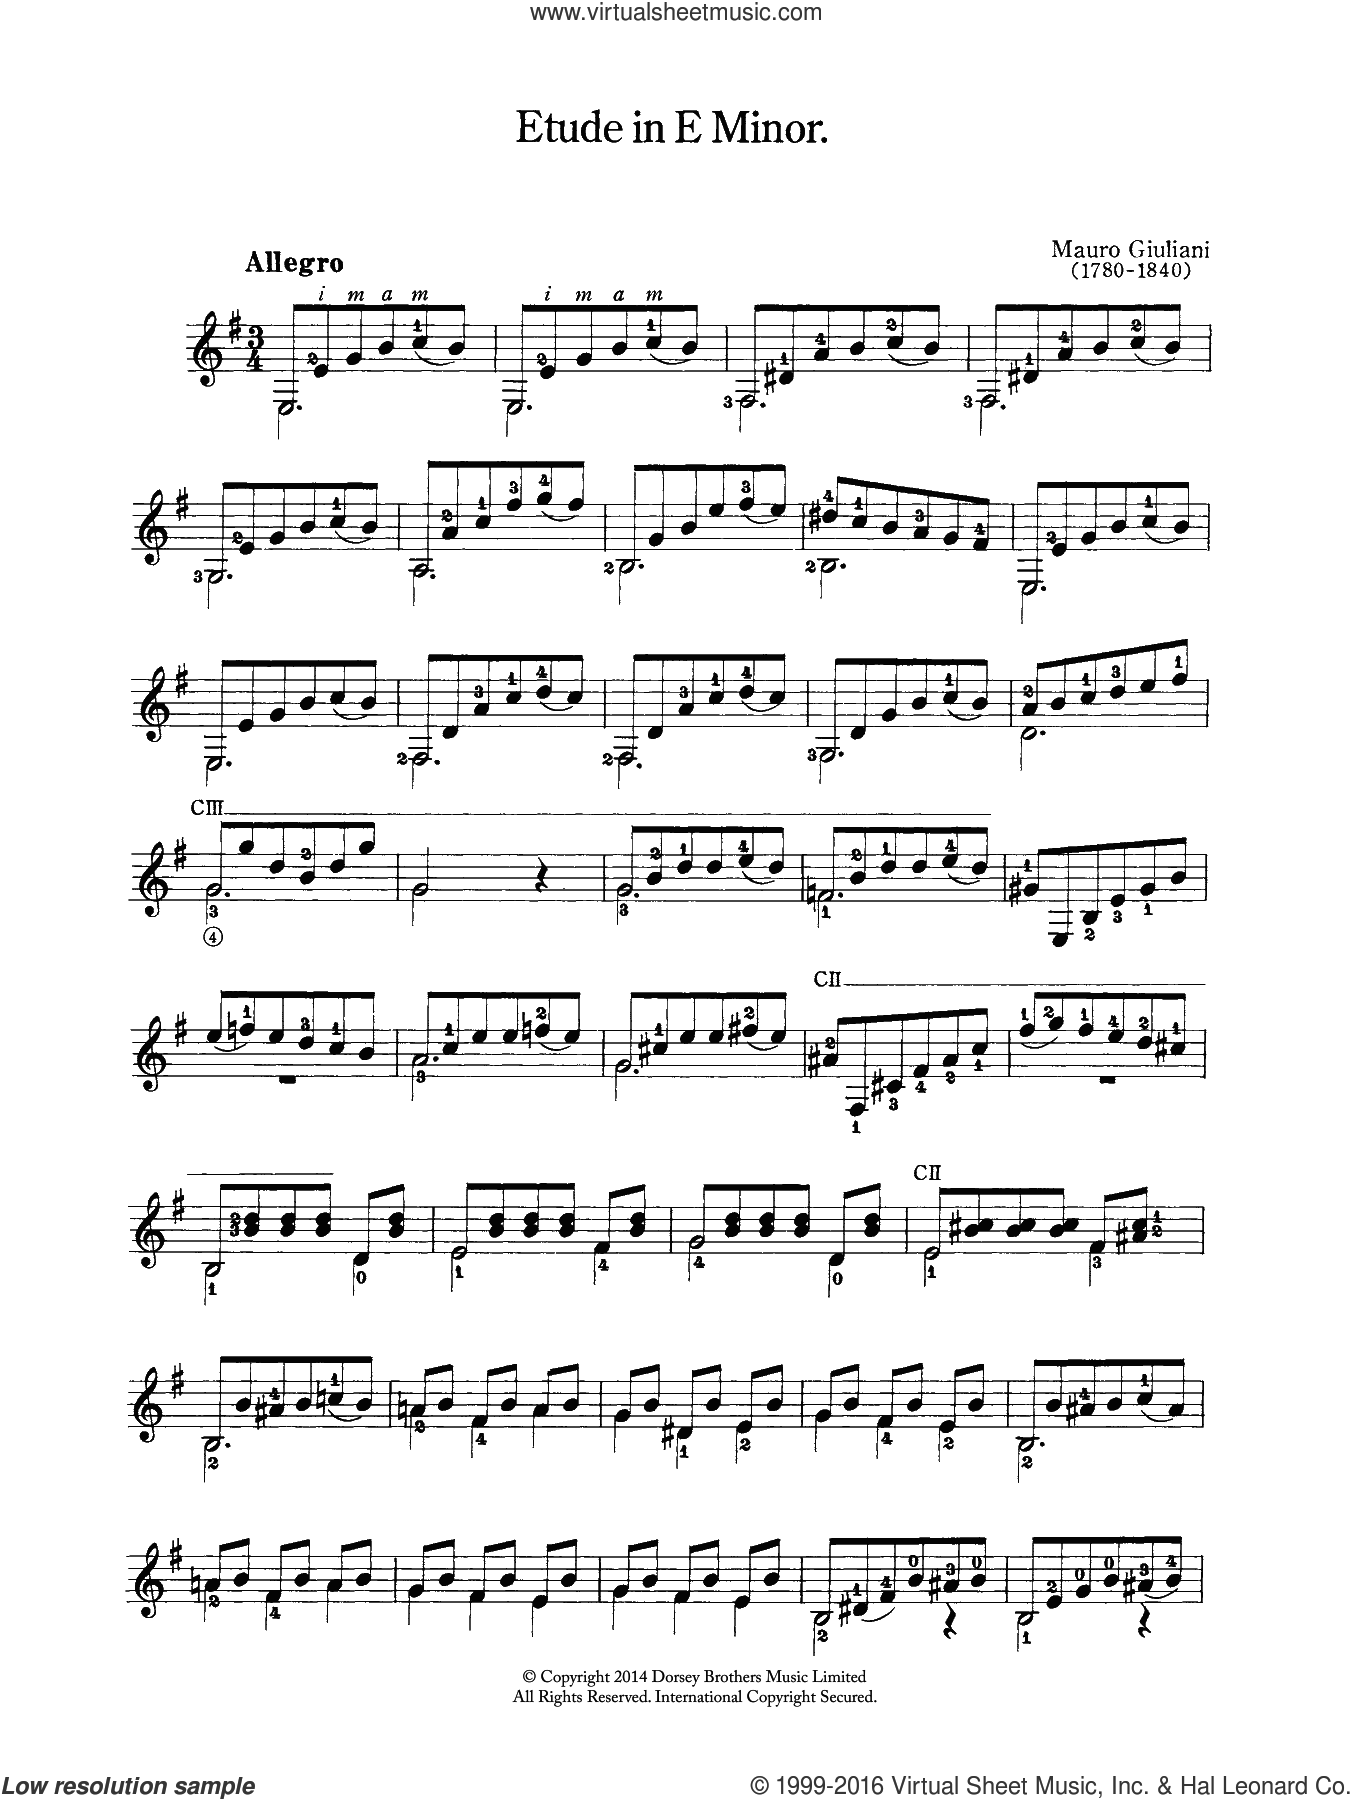 Etude In E Minor sheet music for guitar solo (chords) by Mauro Giuliani, classical score, easy guitar (chords). Score Image Preview.